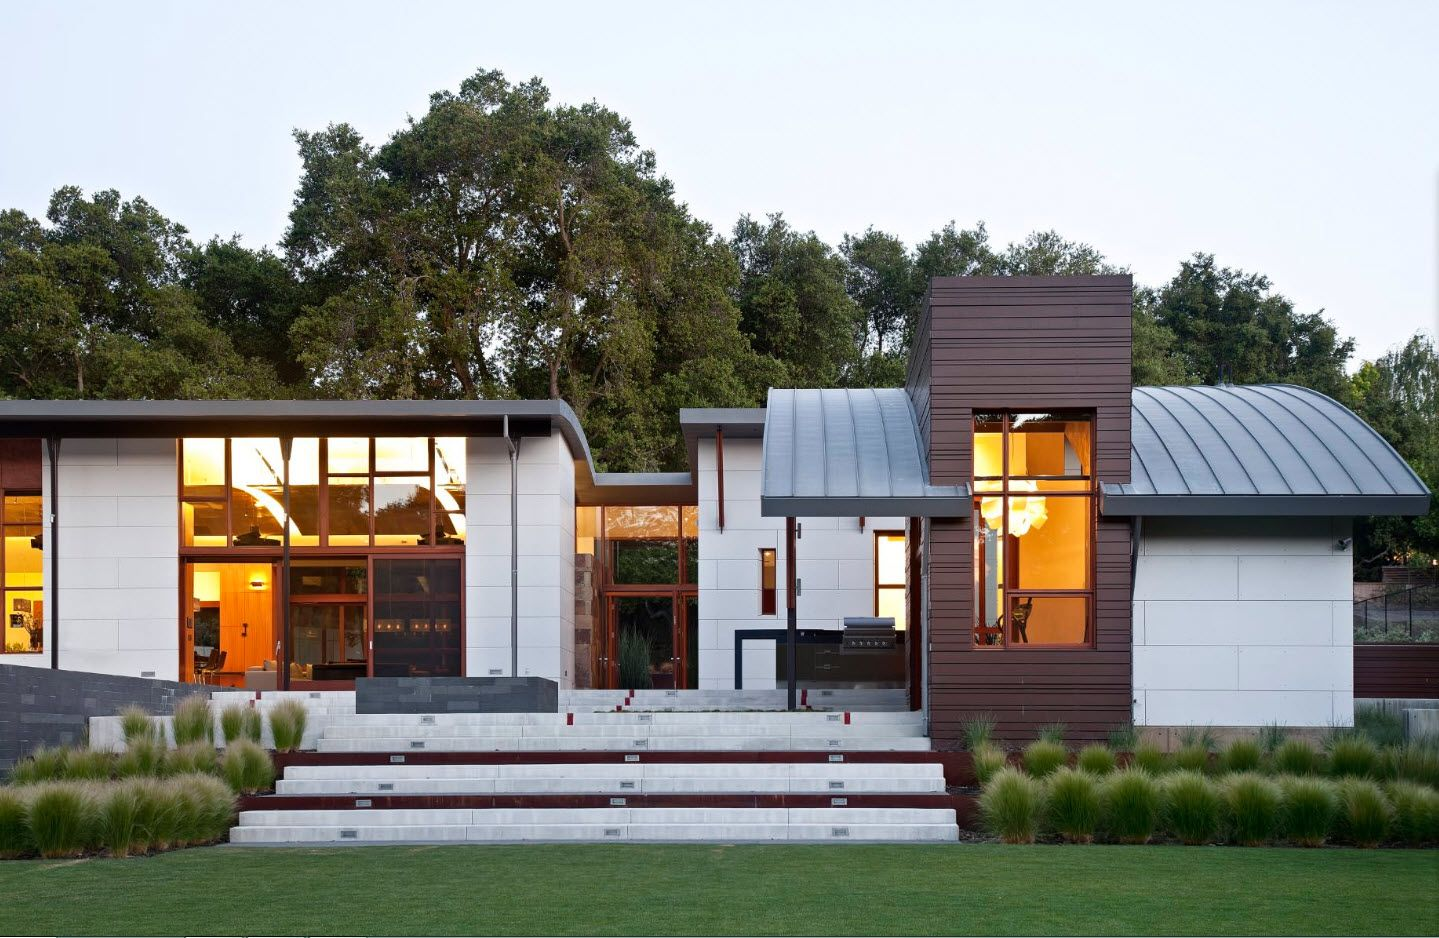 Complex of different style buildings in one composition of suburb spectacular cottage